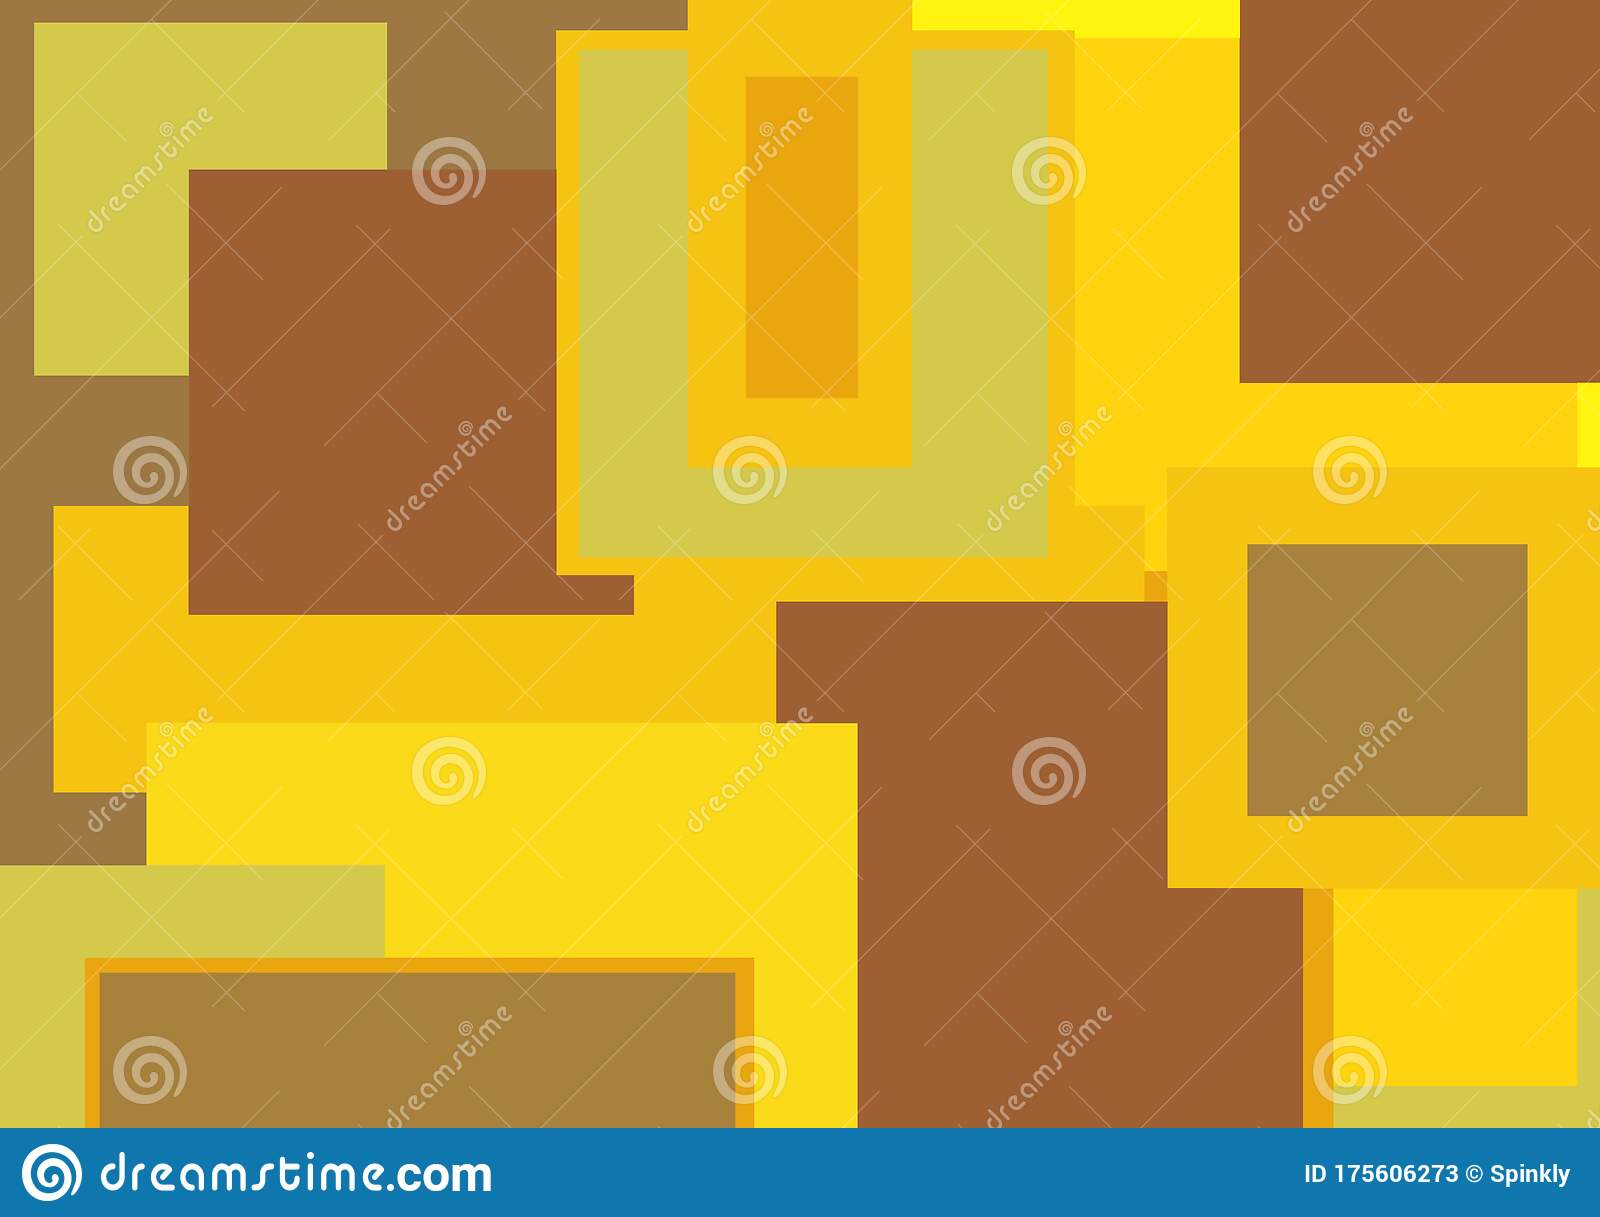 Boxed Layer Background Wallpaper For Designs Stock Illustration Illustration Of Digital Color 175606273